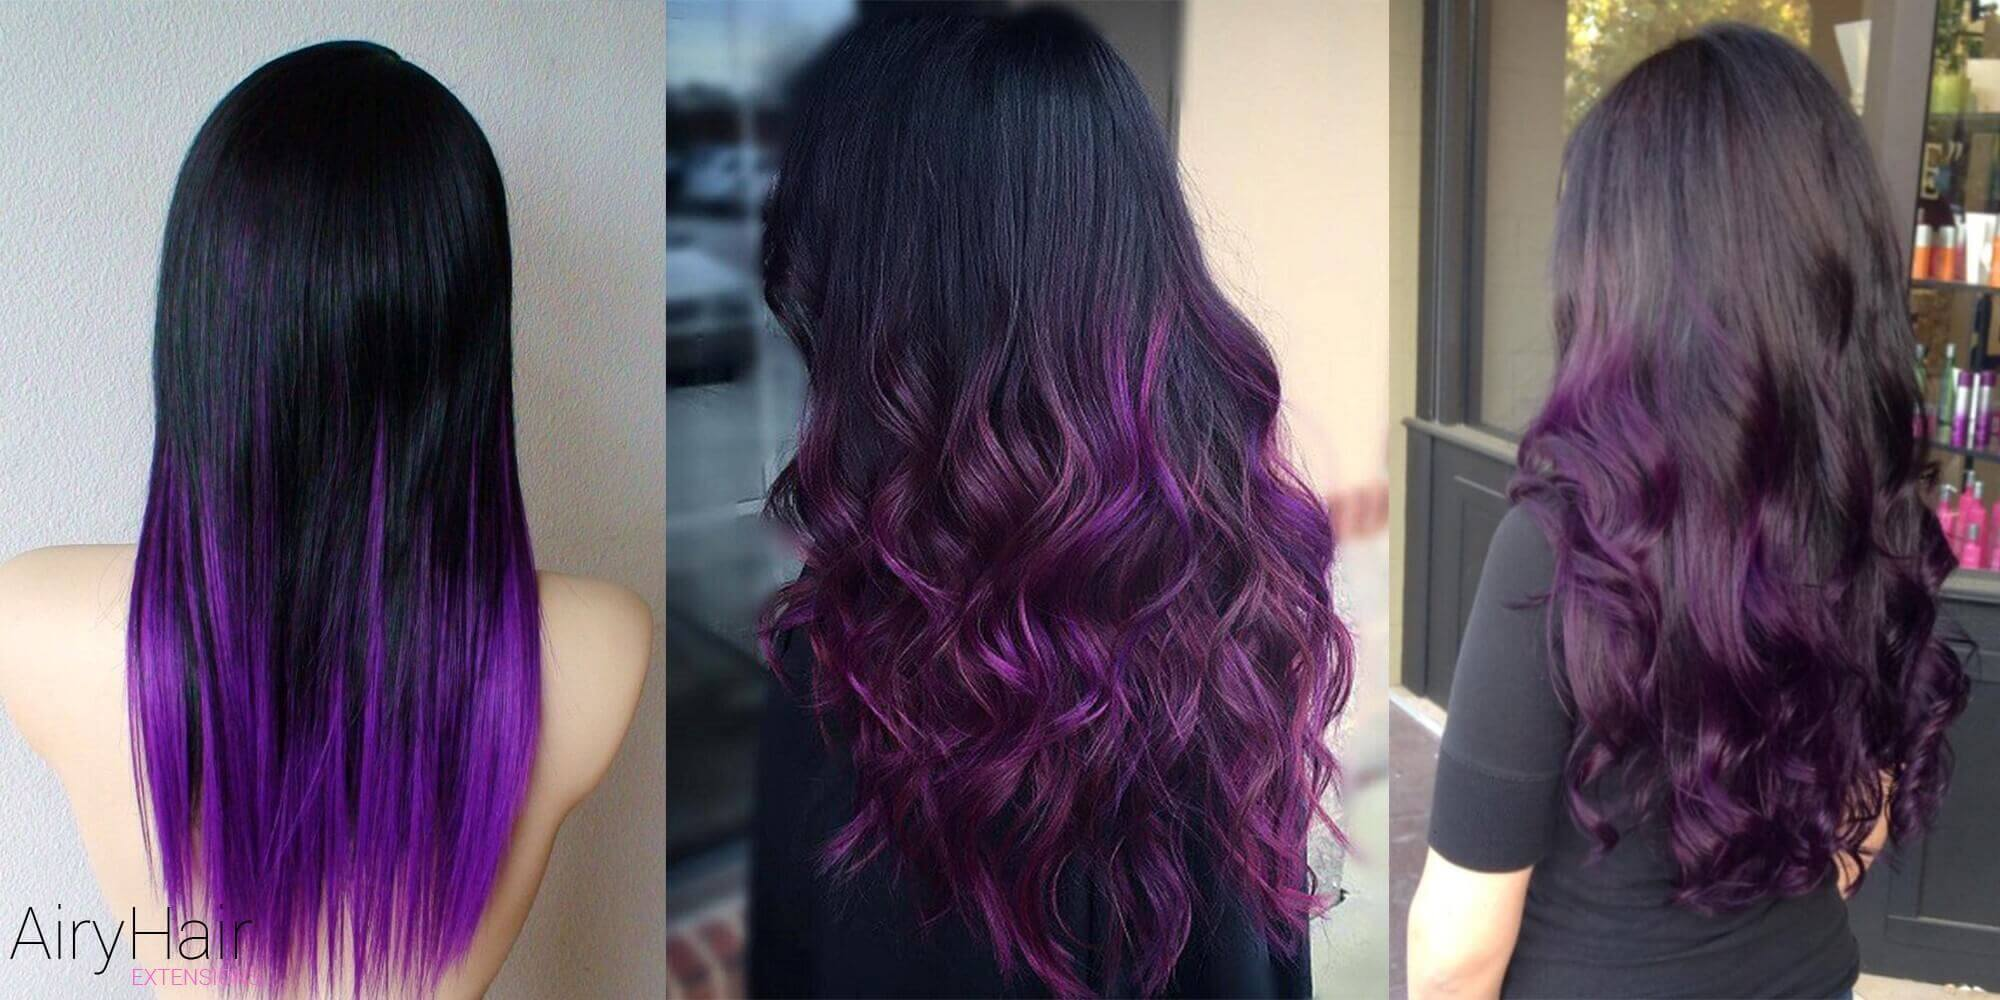 Mysterious Black and Violet Ombre